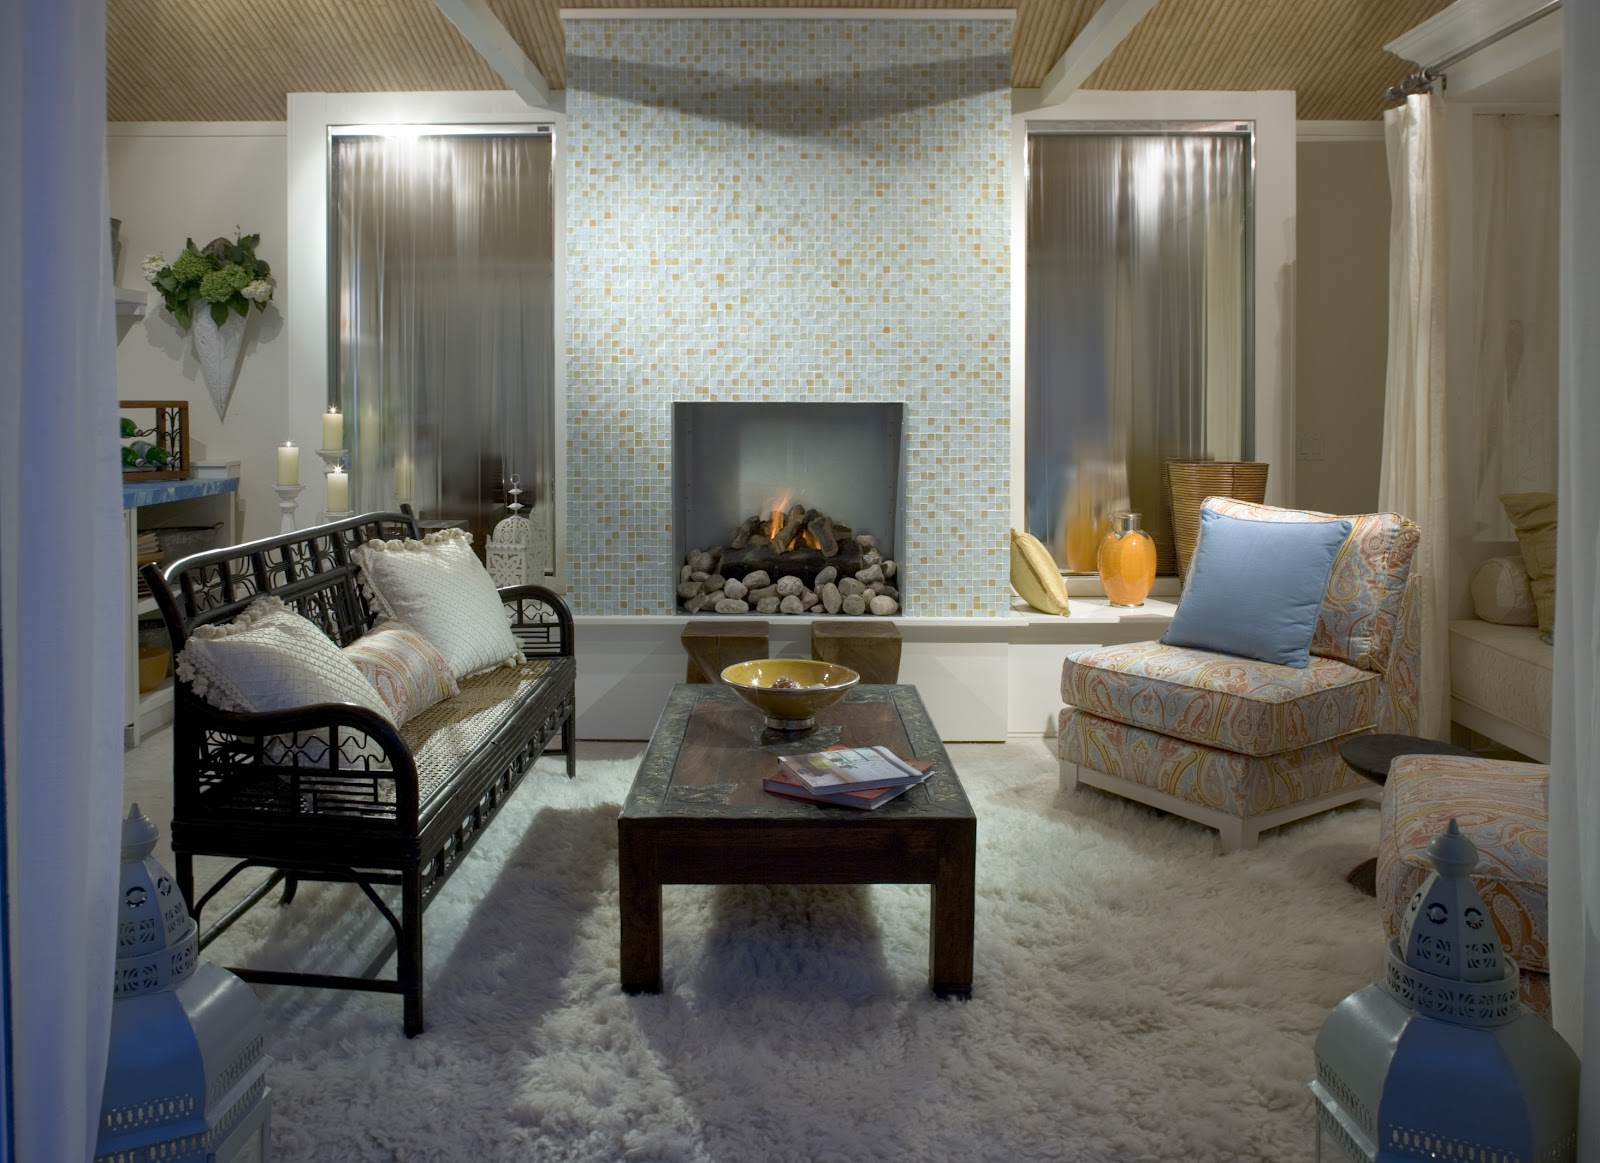 Alpentile Glass Tile Swimming Pools Fireplaces Take Center Stage